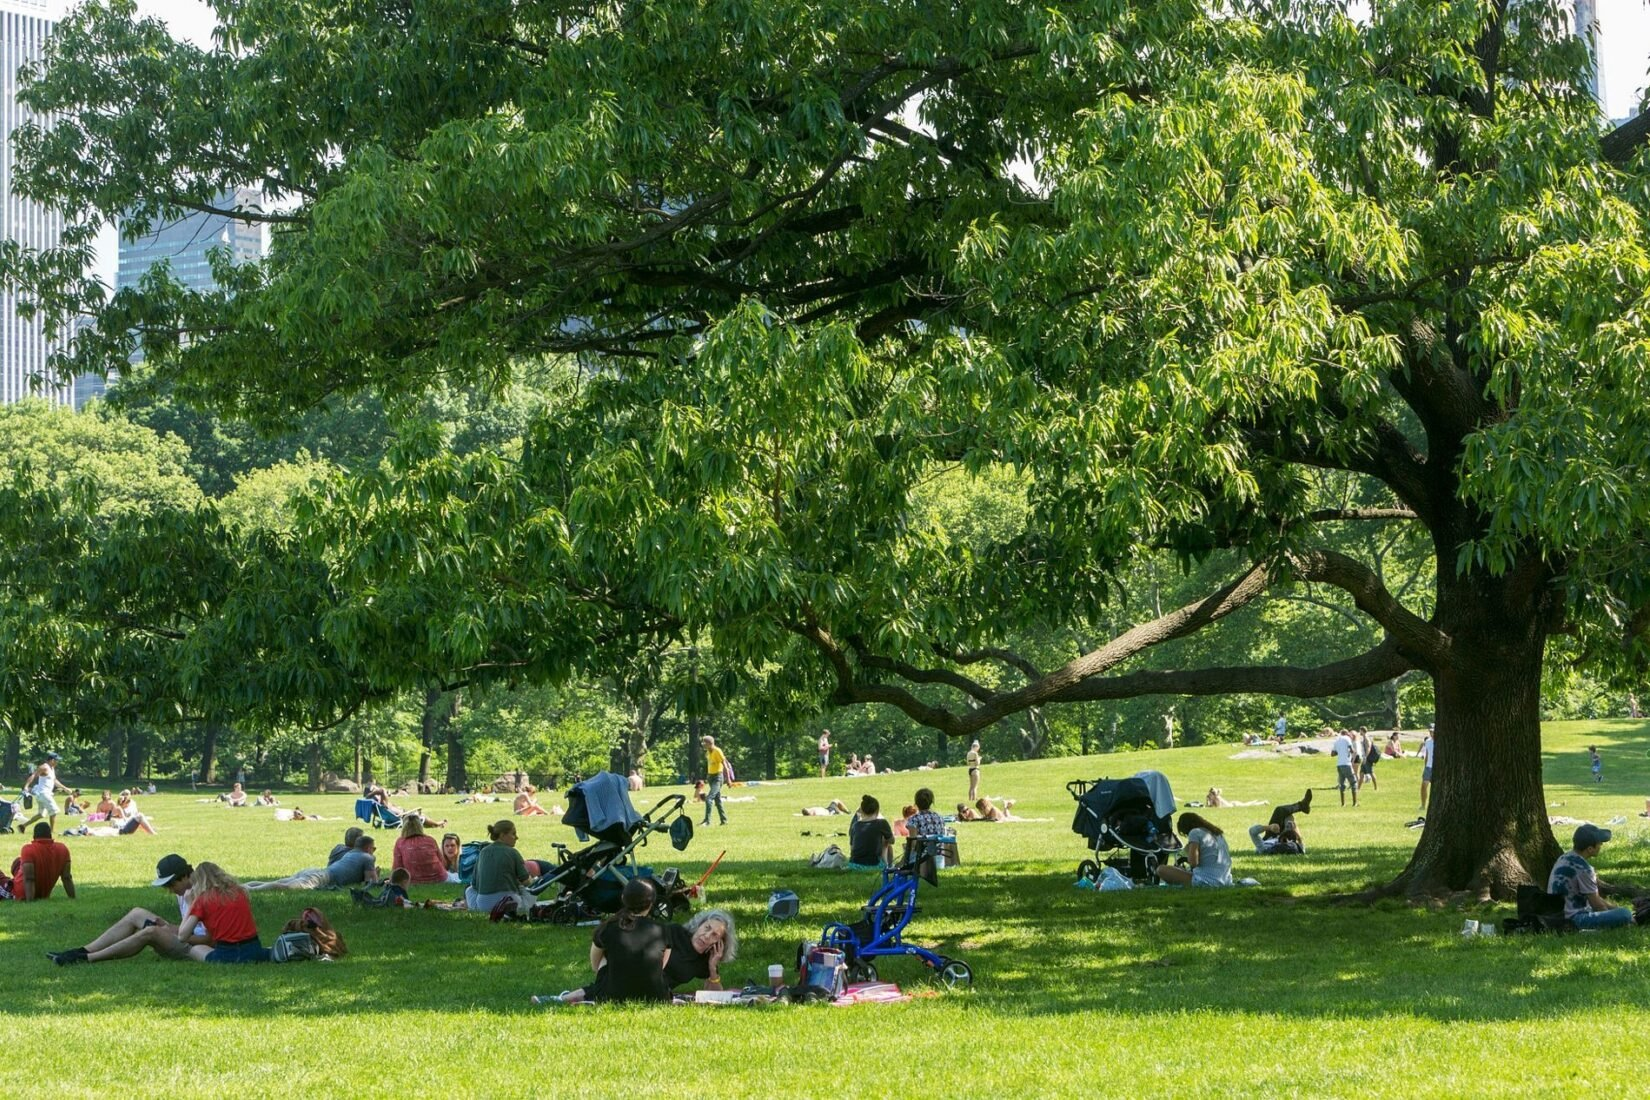 Park-goers enjoy the shade provided by a tree on Sheep Meadow.